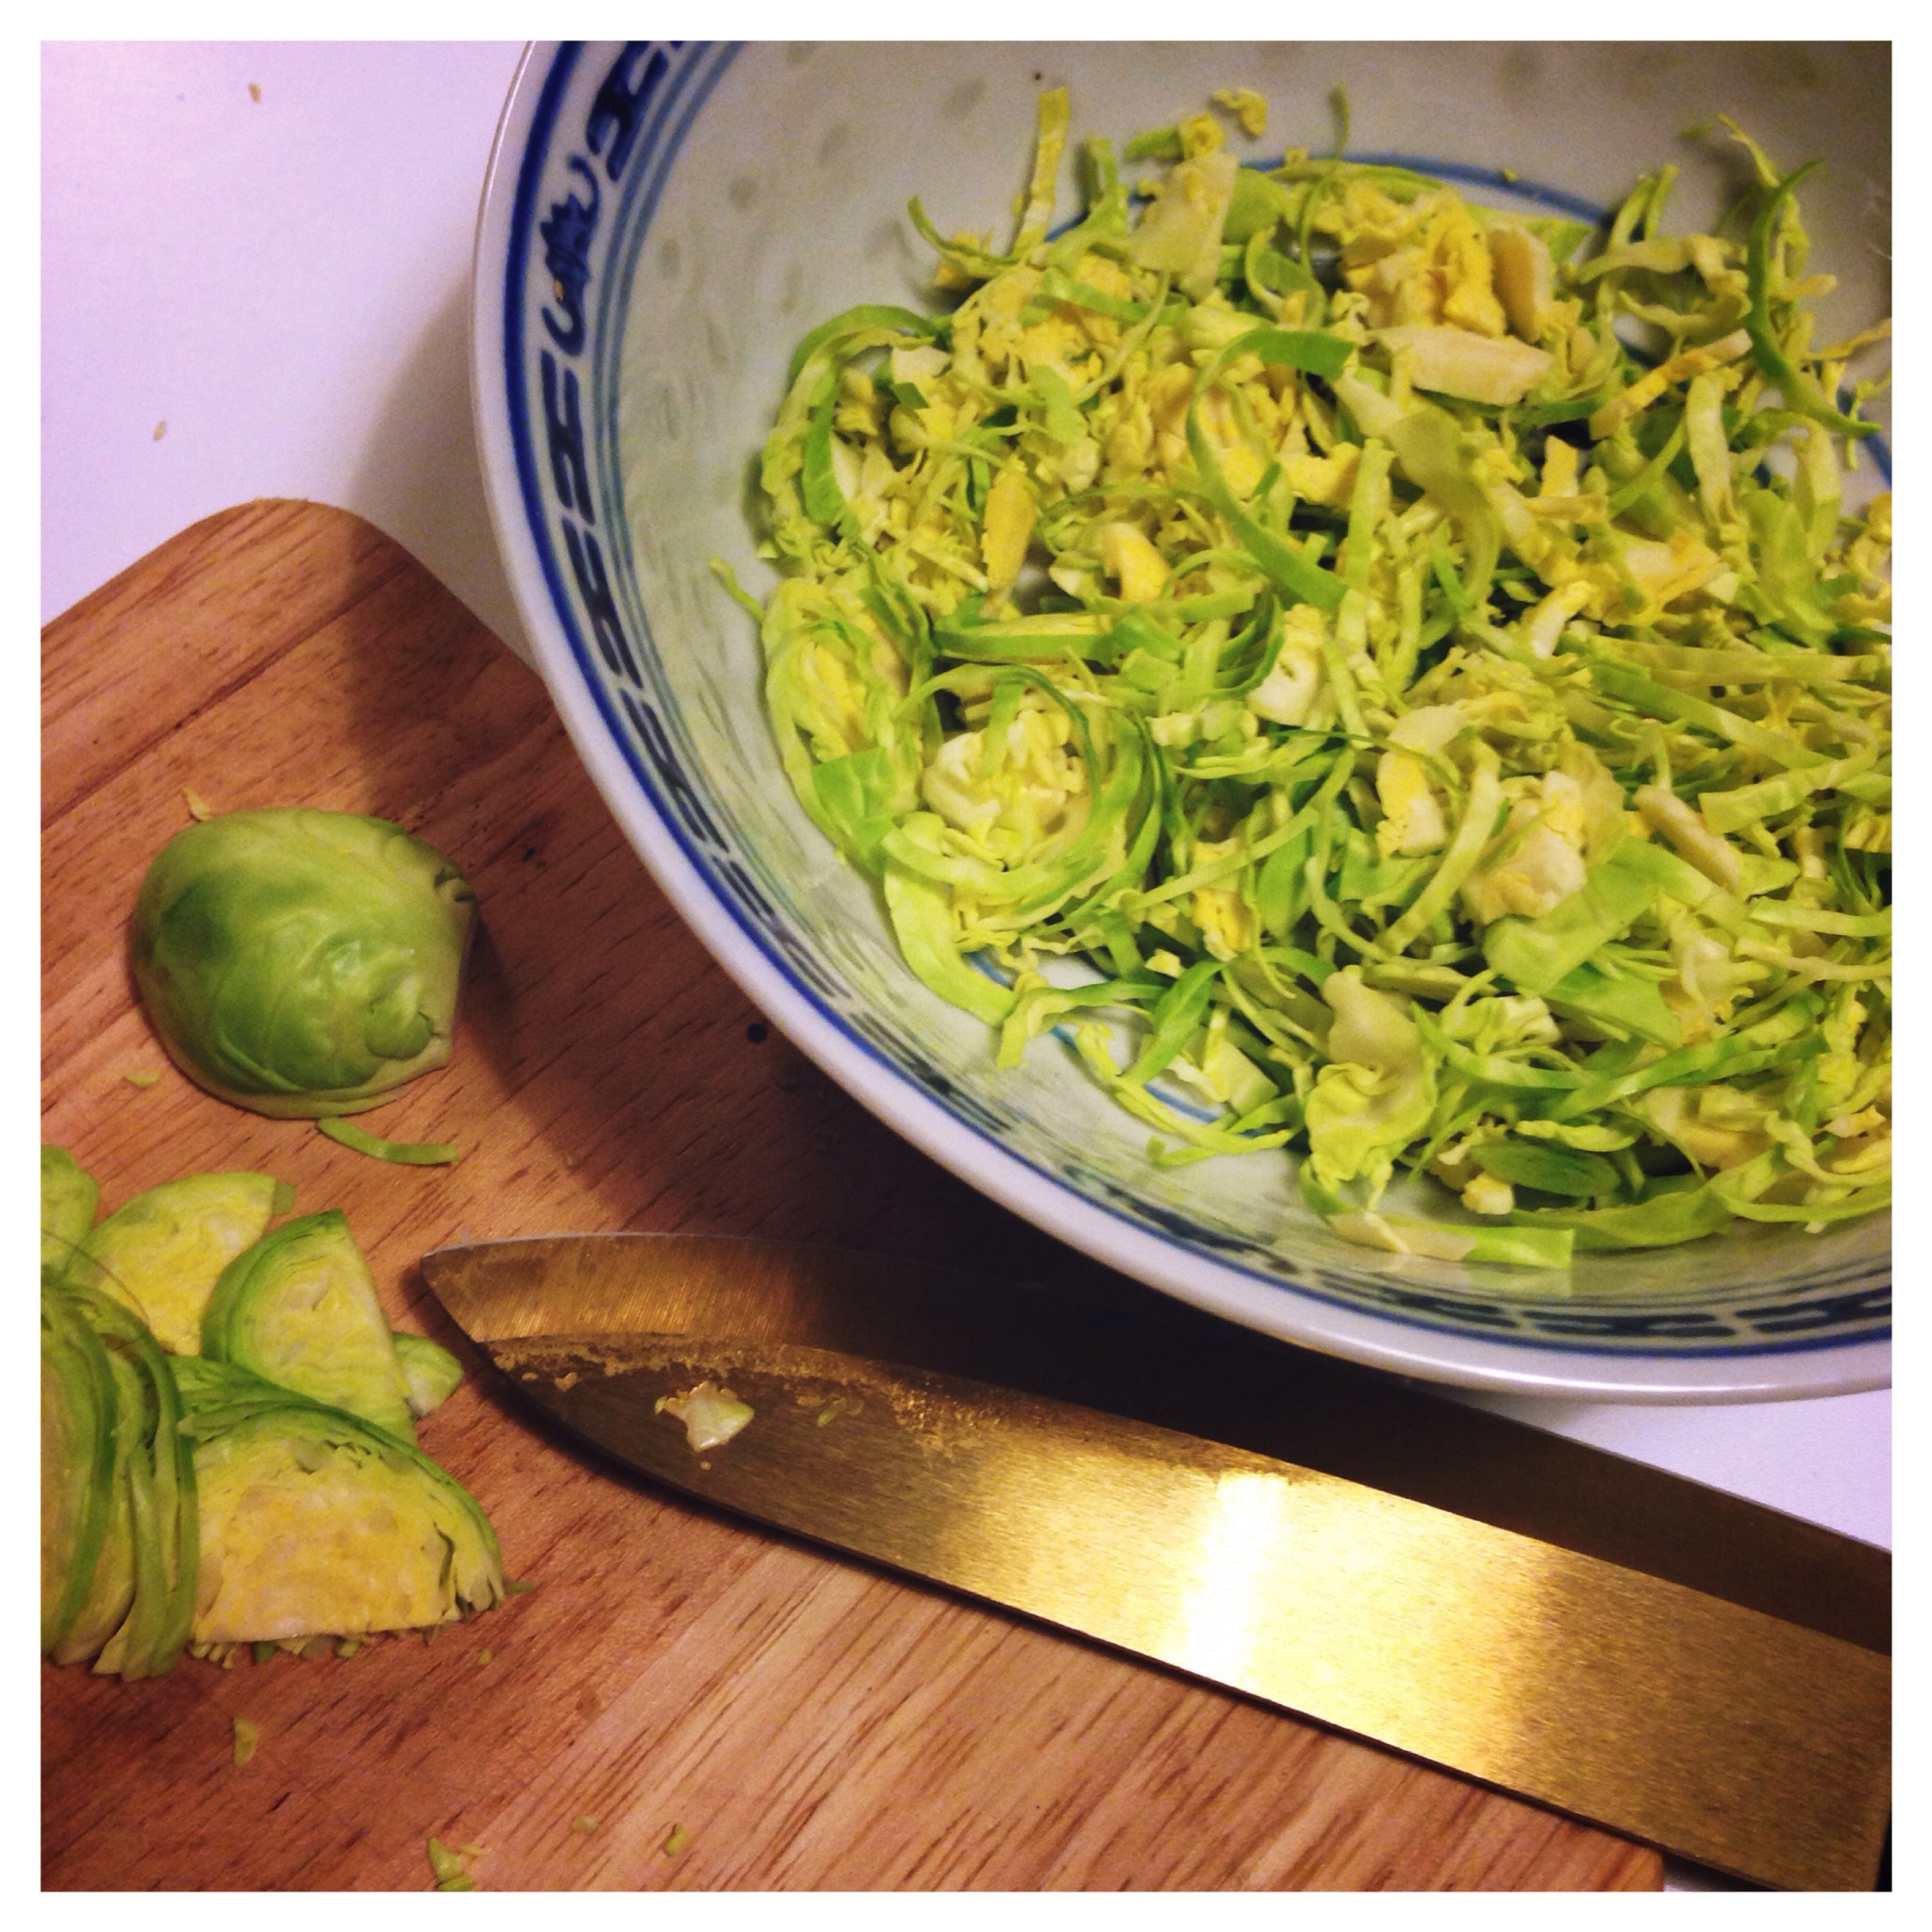 Thinly shred the Brussel sprouts and mix with mayo, vinegar and ...